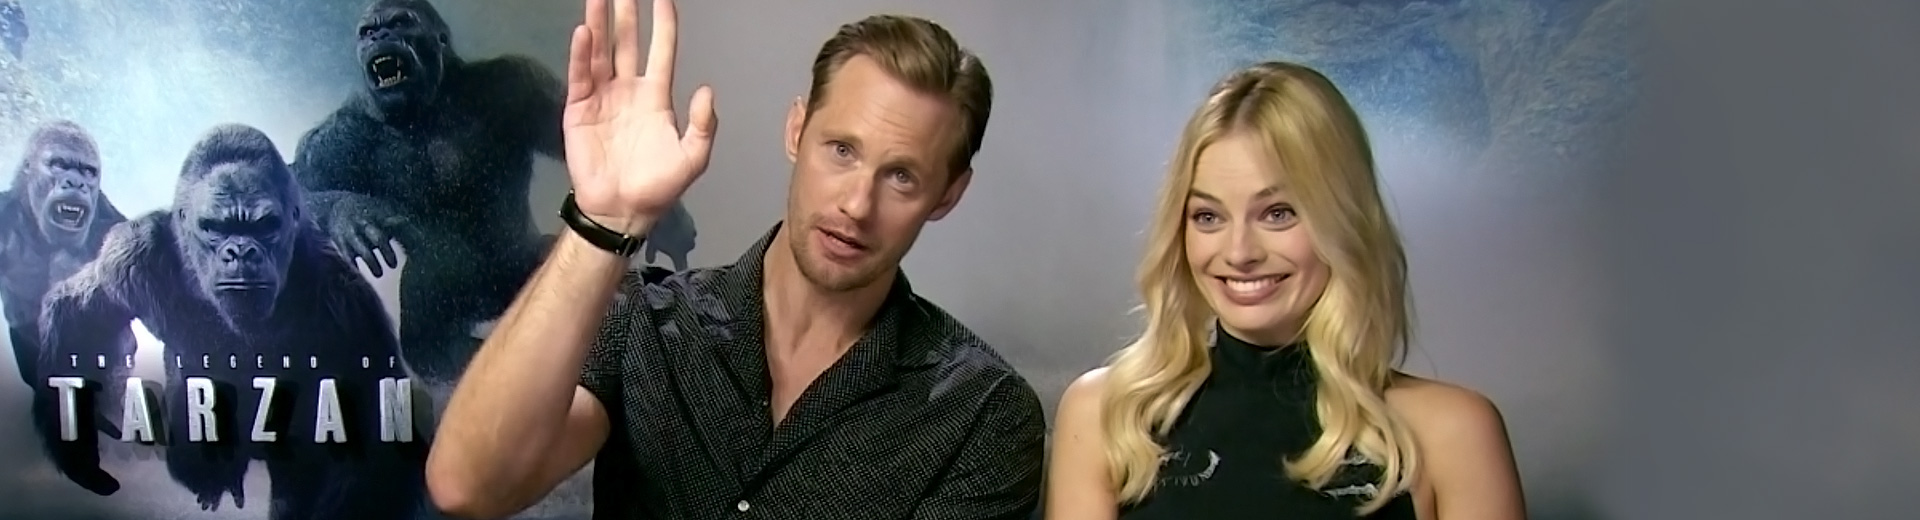 Exclusive interview with Alexander Skarsgård and Margot Robbie